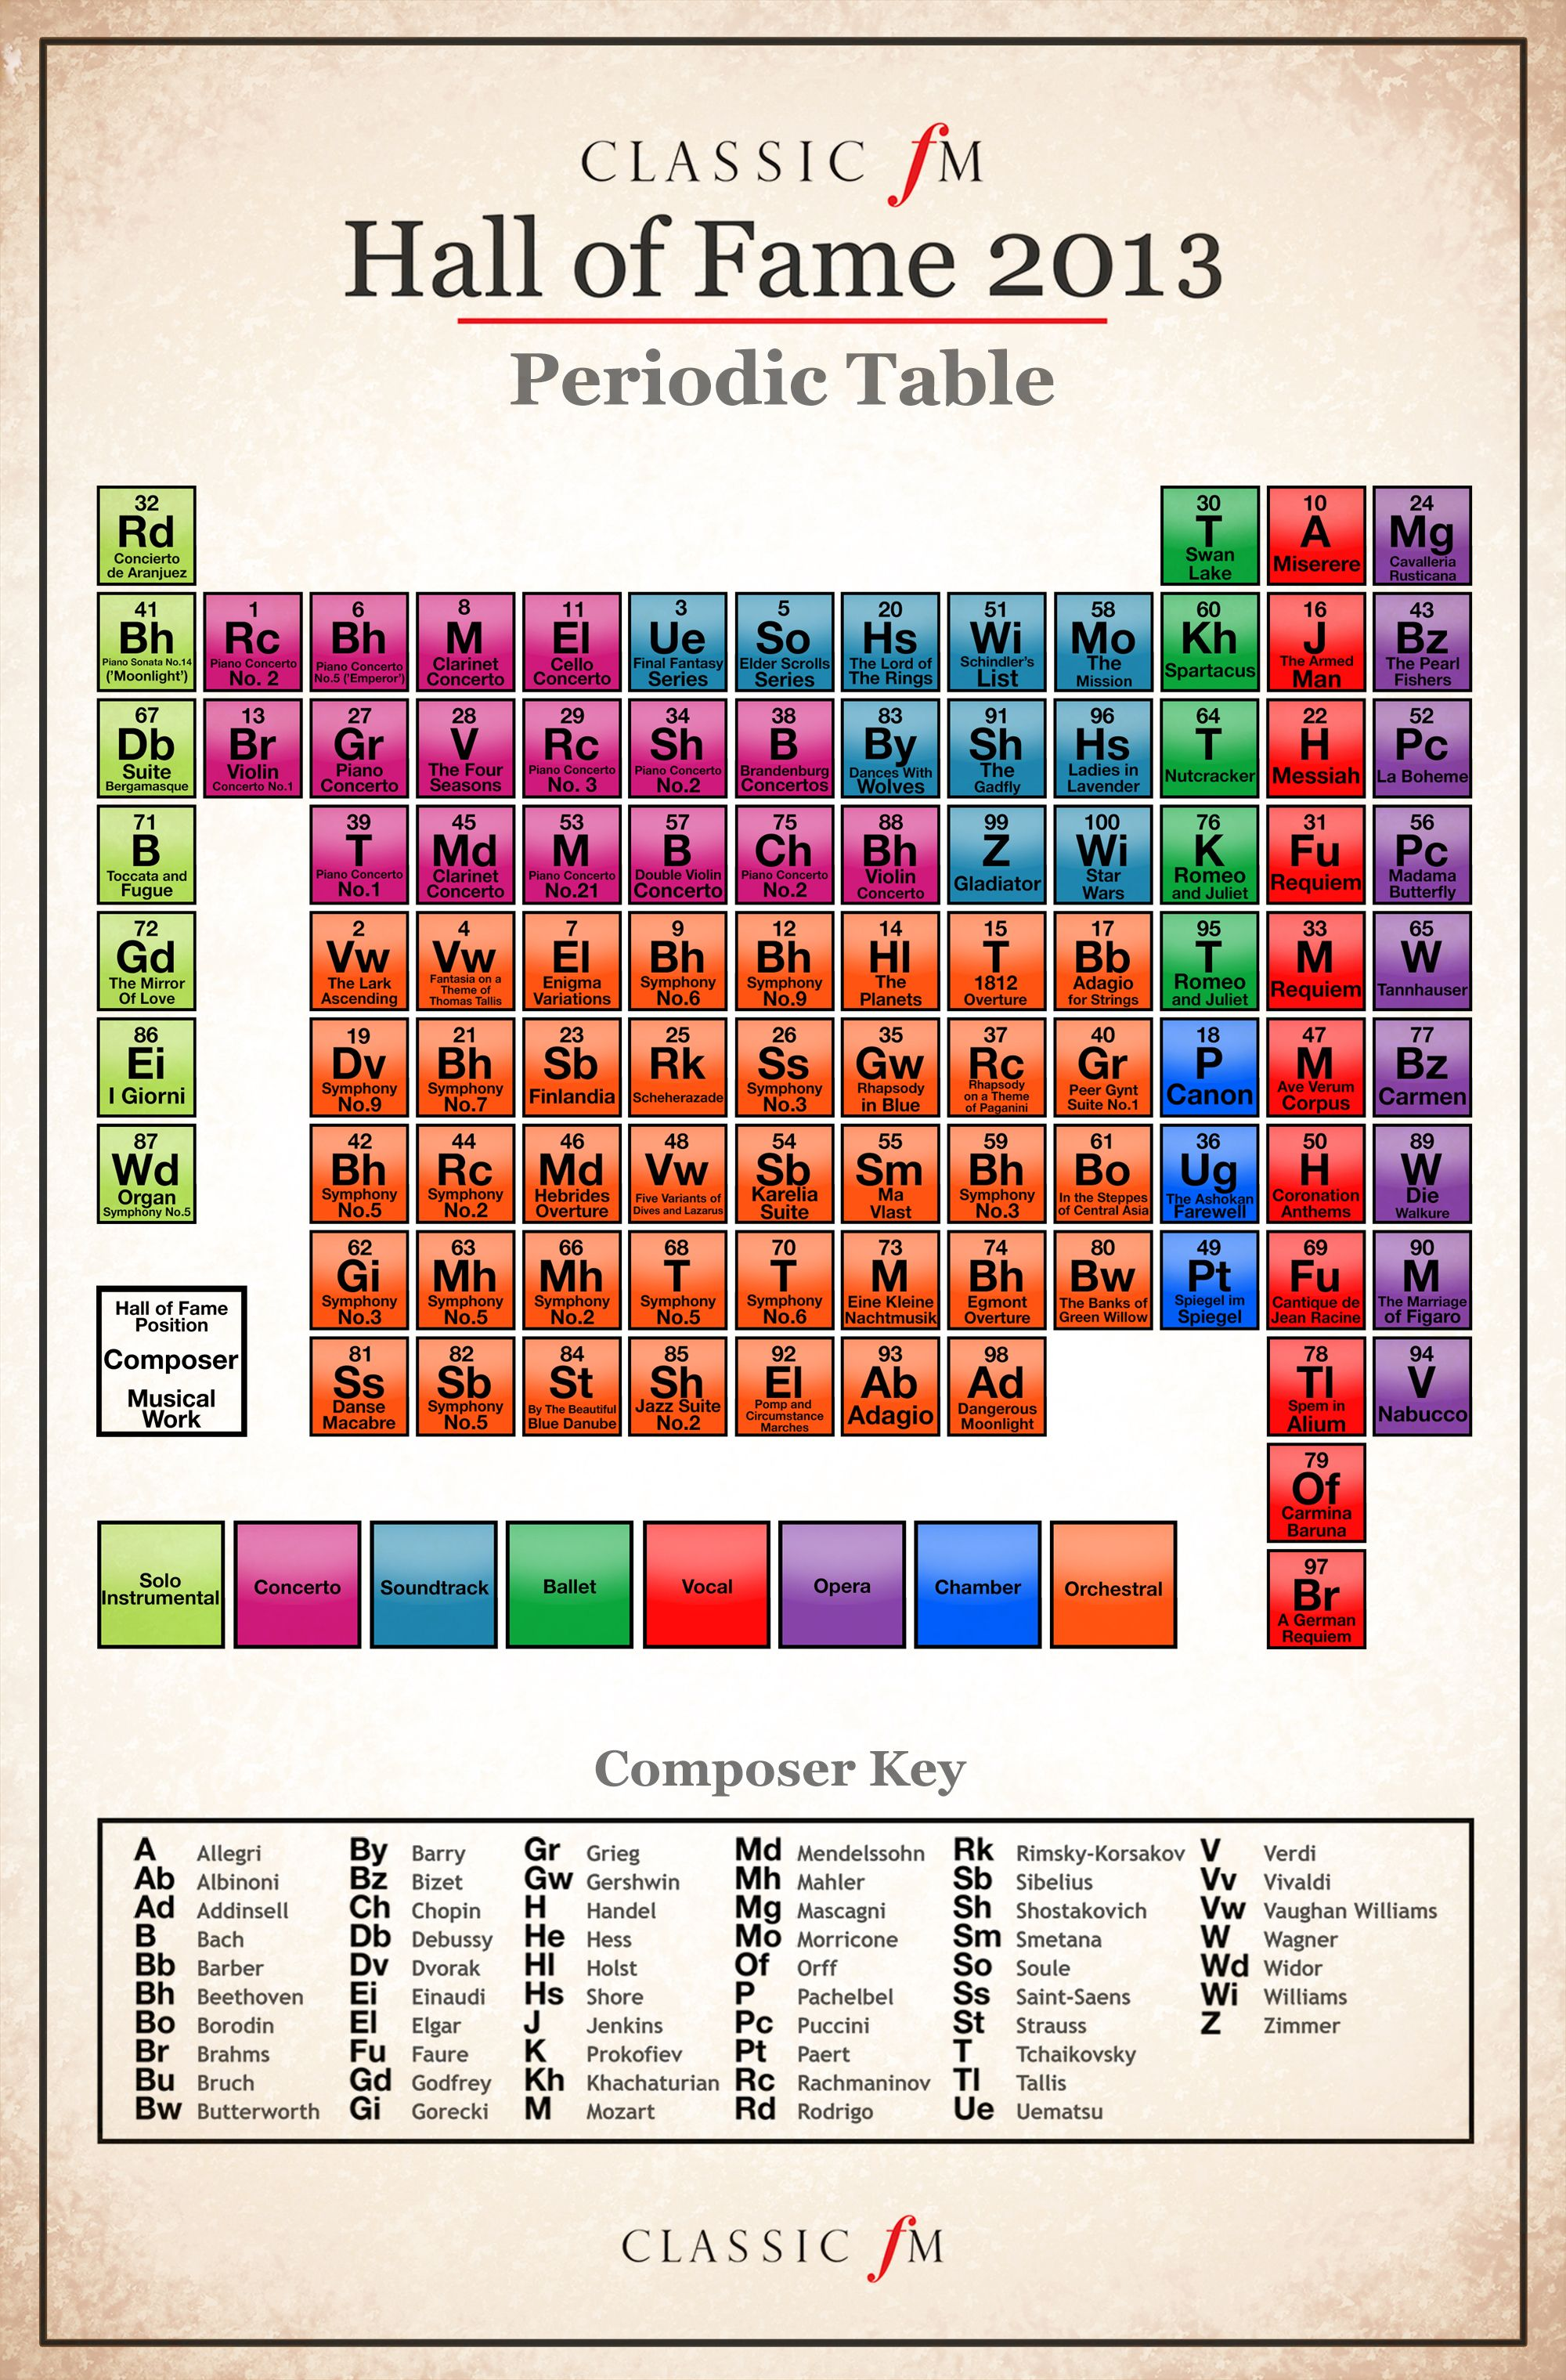 The classic fm hall of fame the infographic classic fm arts classif fm hall of fame 2013 periodic table gamestrikefo Images